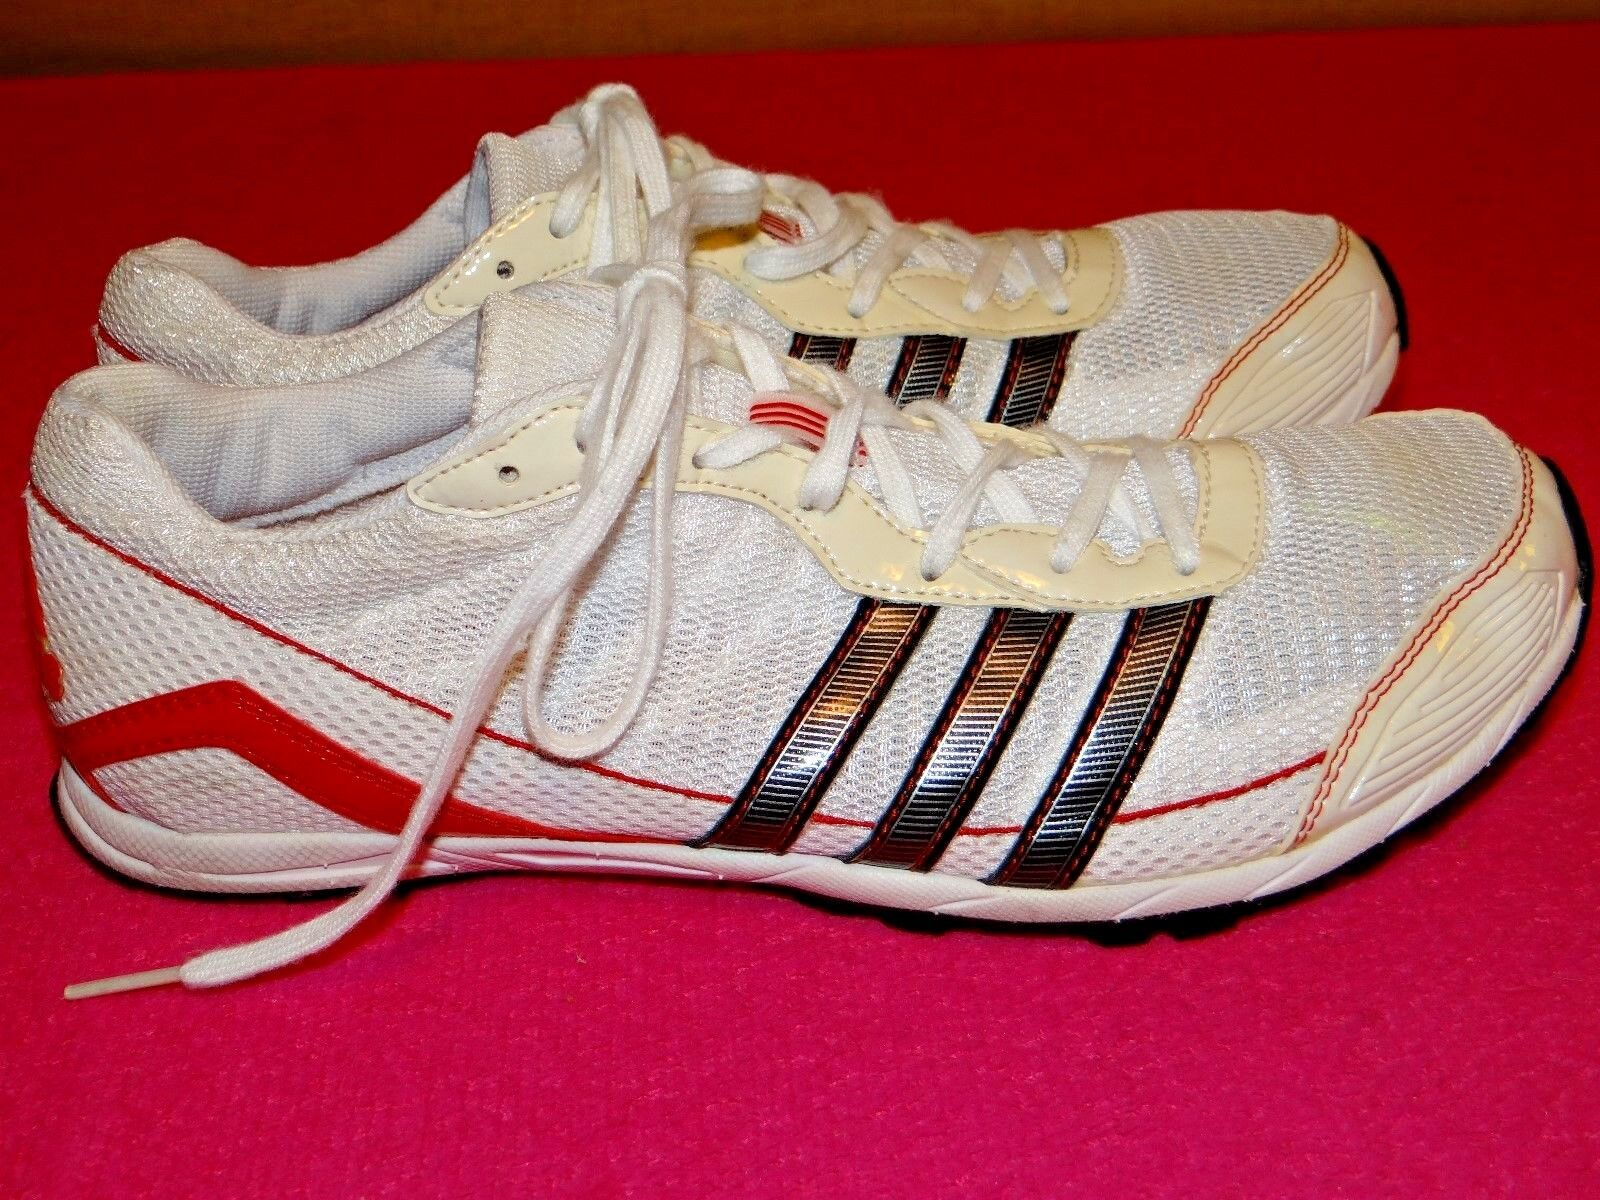 EEUC ADIDAS Adiwear White Red Black Spikeless Shoes Women Price reduction Wild casual shoes